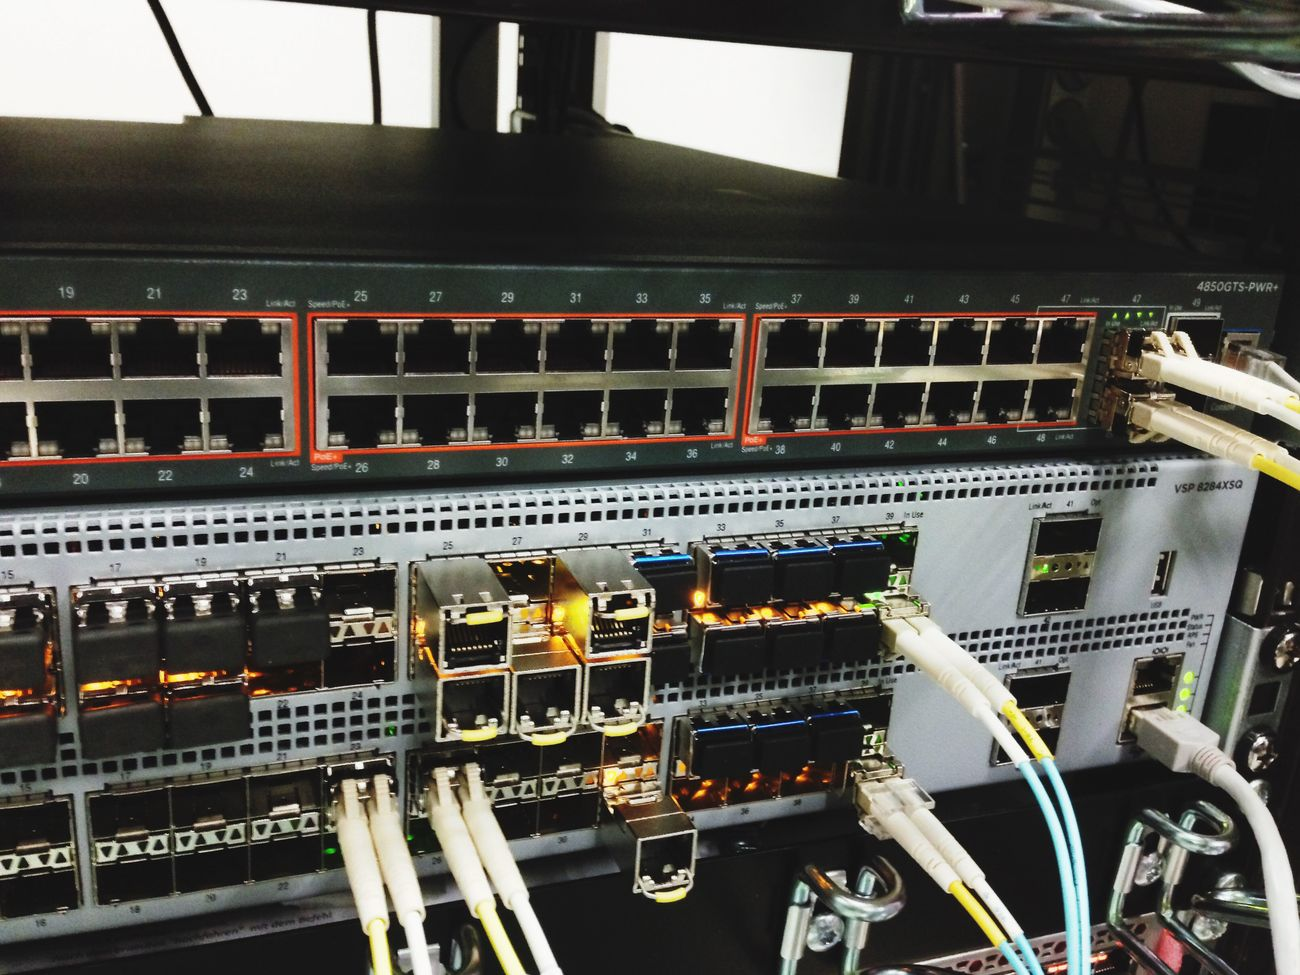 This week @ Controlware I finished my Avaya Shortestpathbridging Fabric Connect setup with an Cluster of two VSP-8284XSQ & a bunch of VSP-7k's and ERS-4850's! Next customer please :)